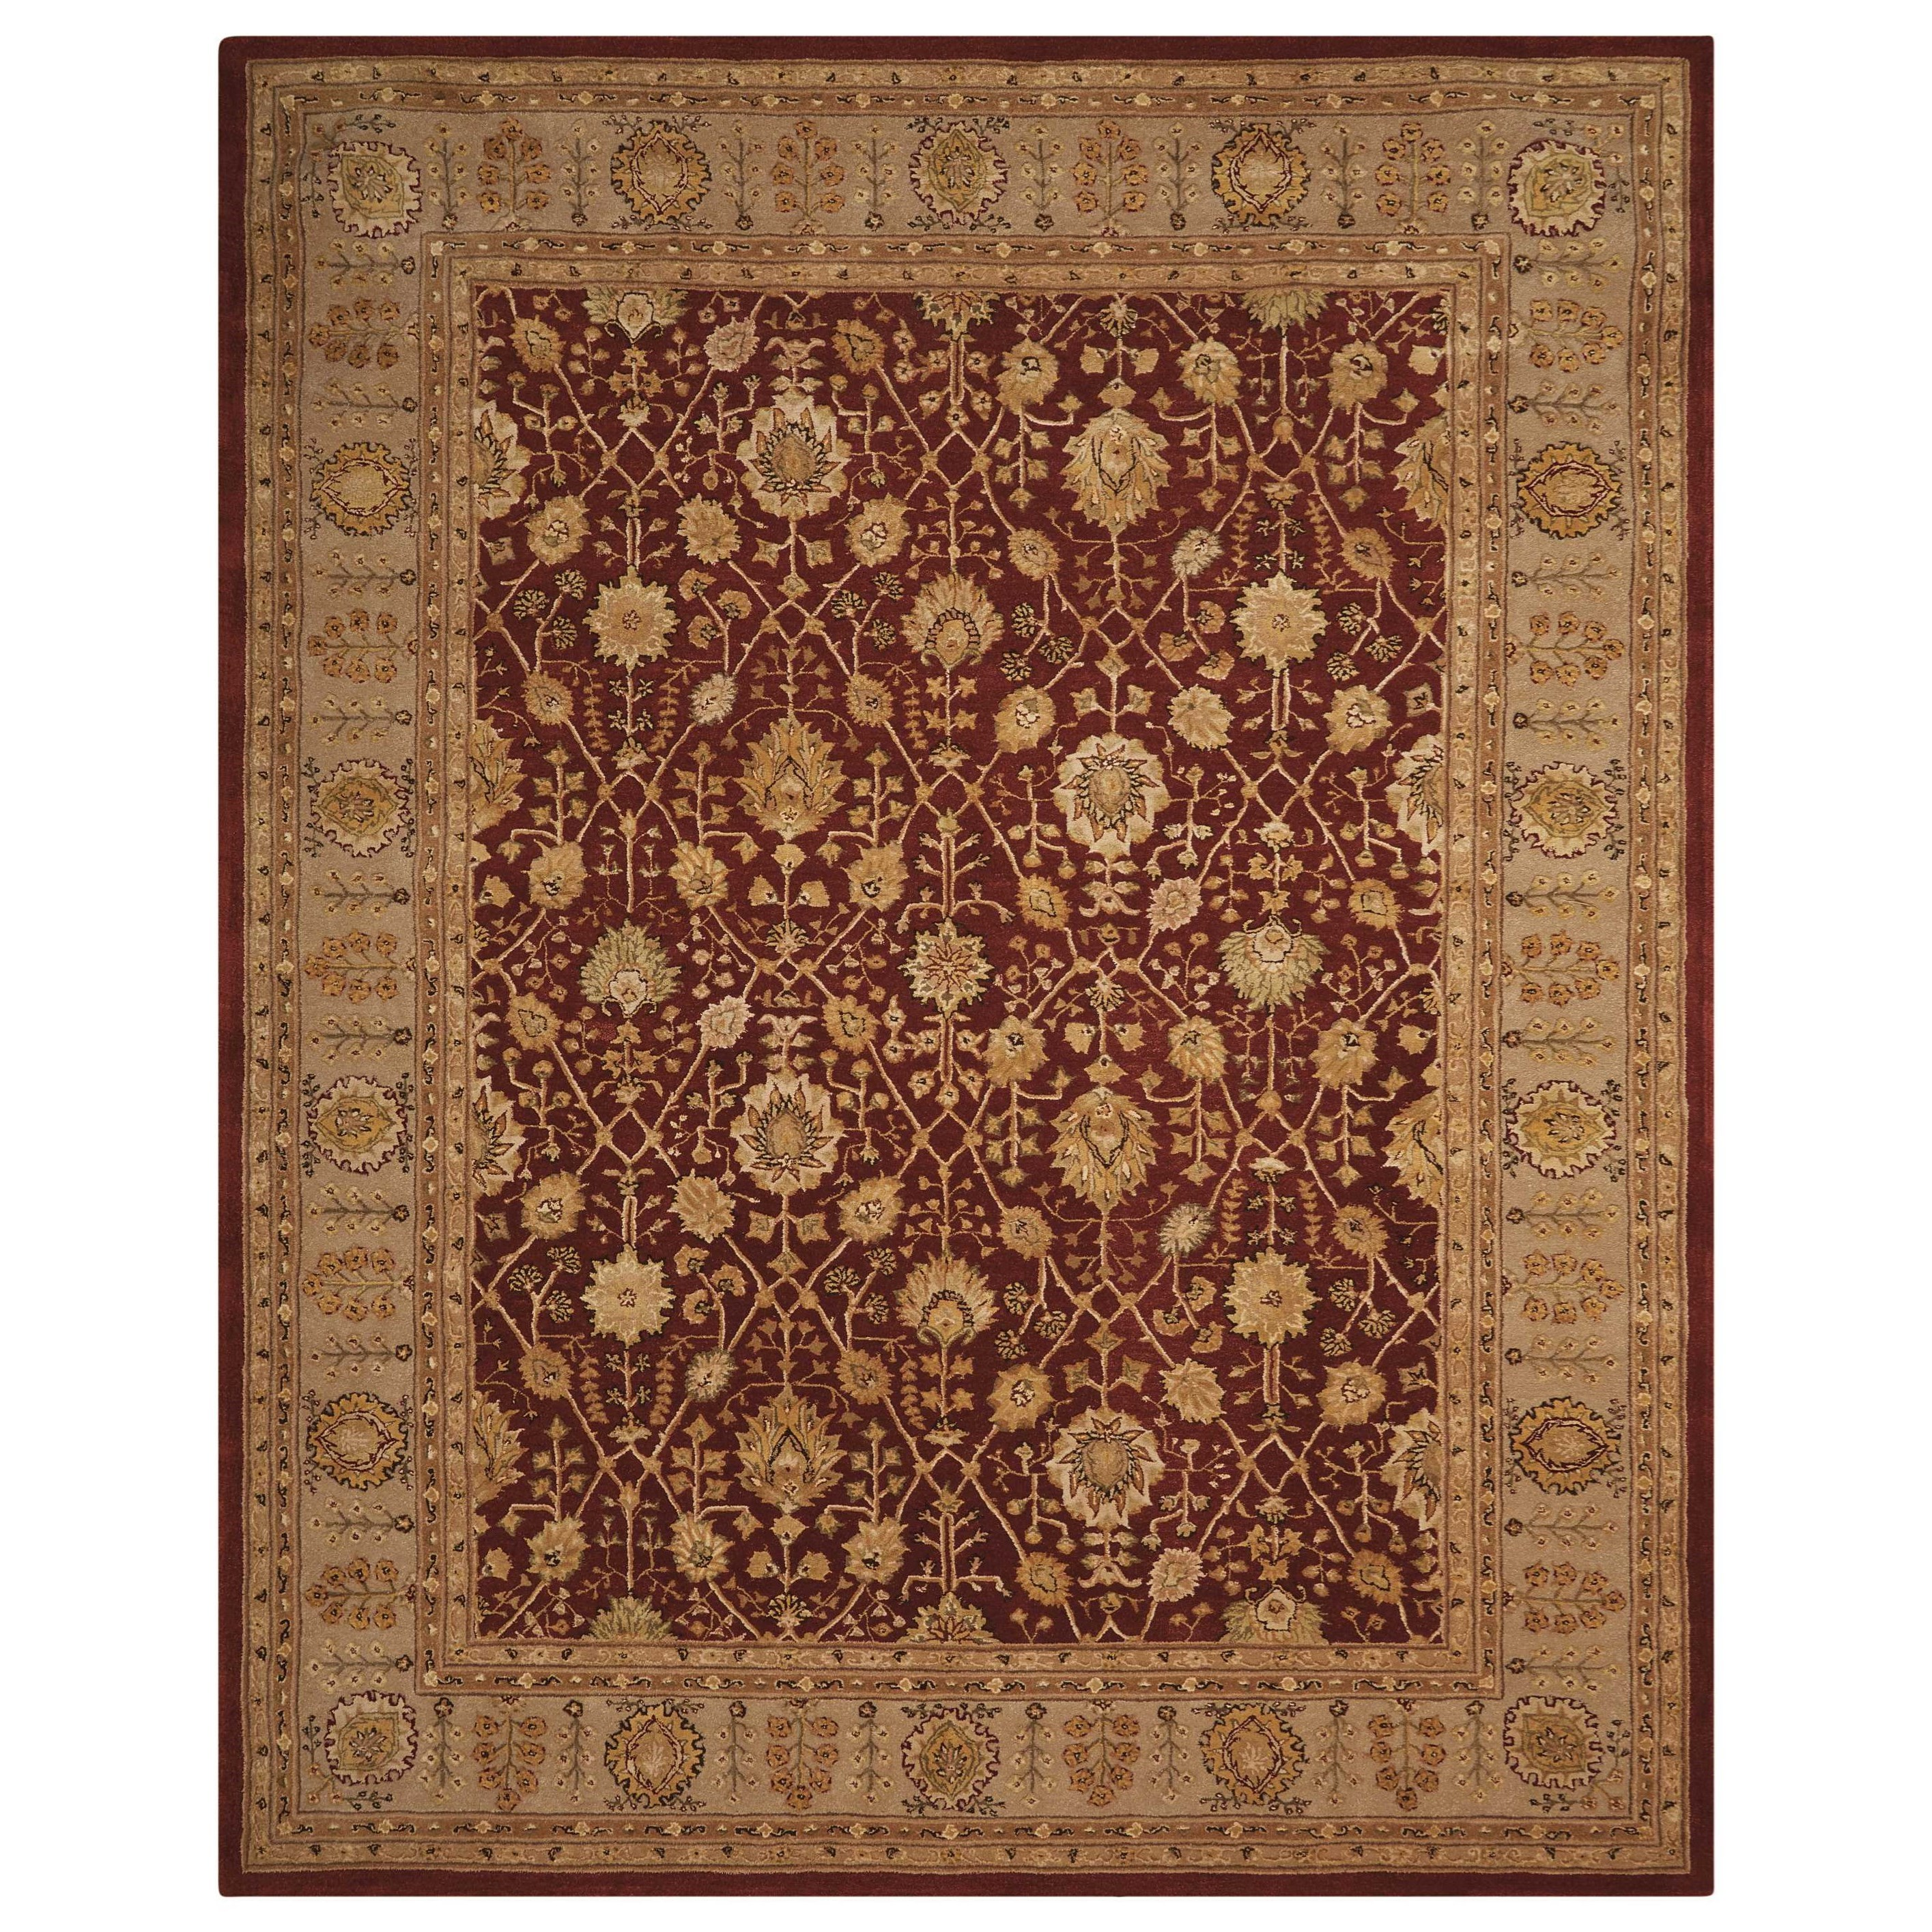 """Nourison 3000 8'6"""" x 11'6"""" Rust Rectangle Rug by Nourison at Home Collections Furniture"""